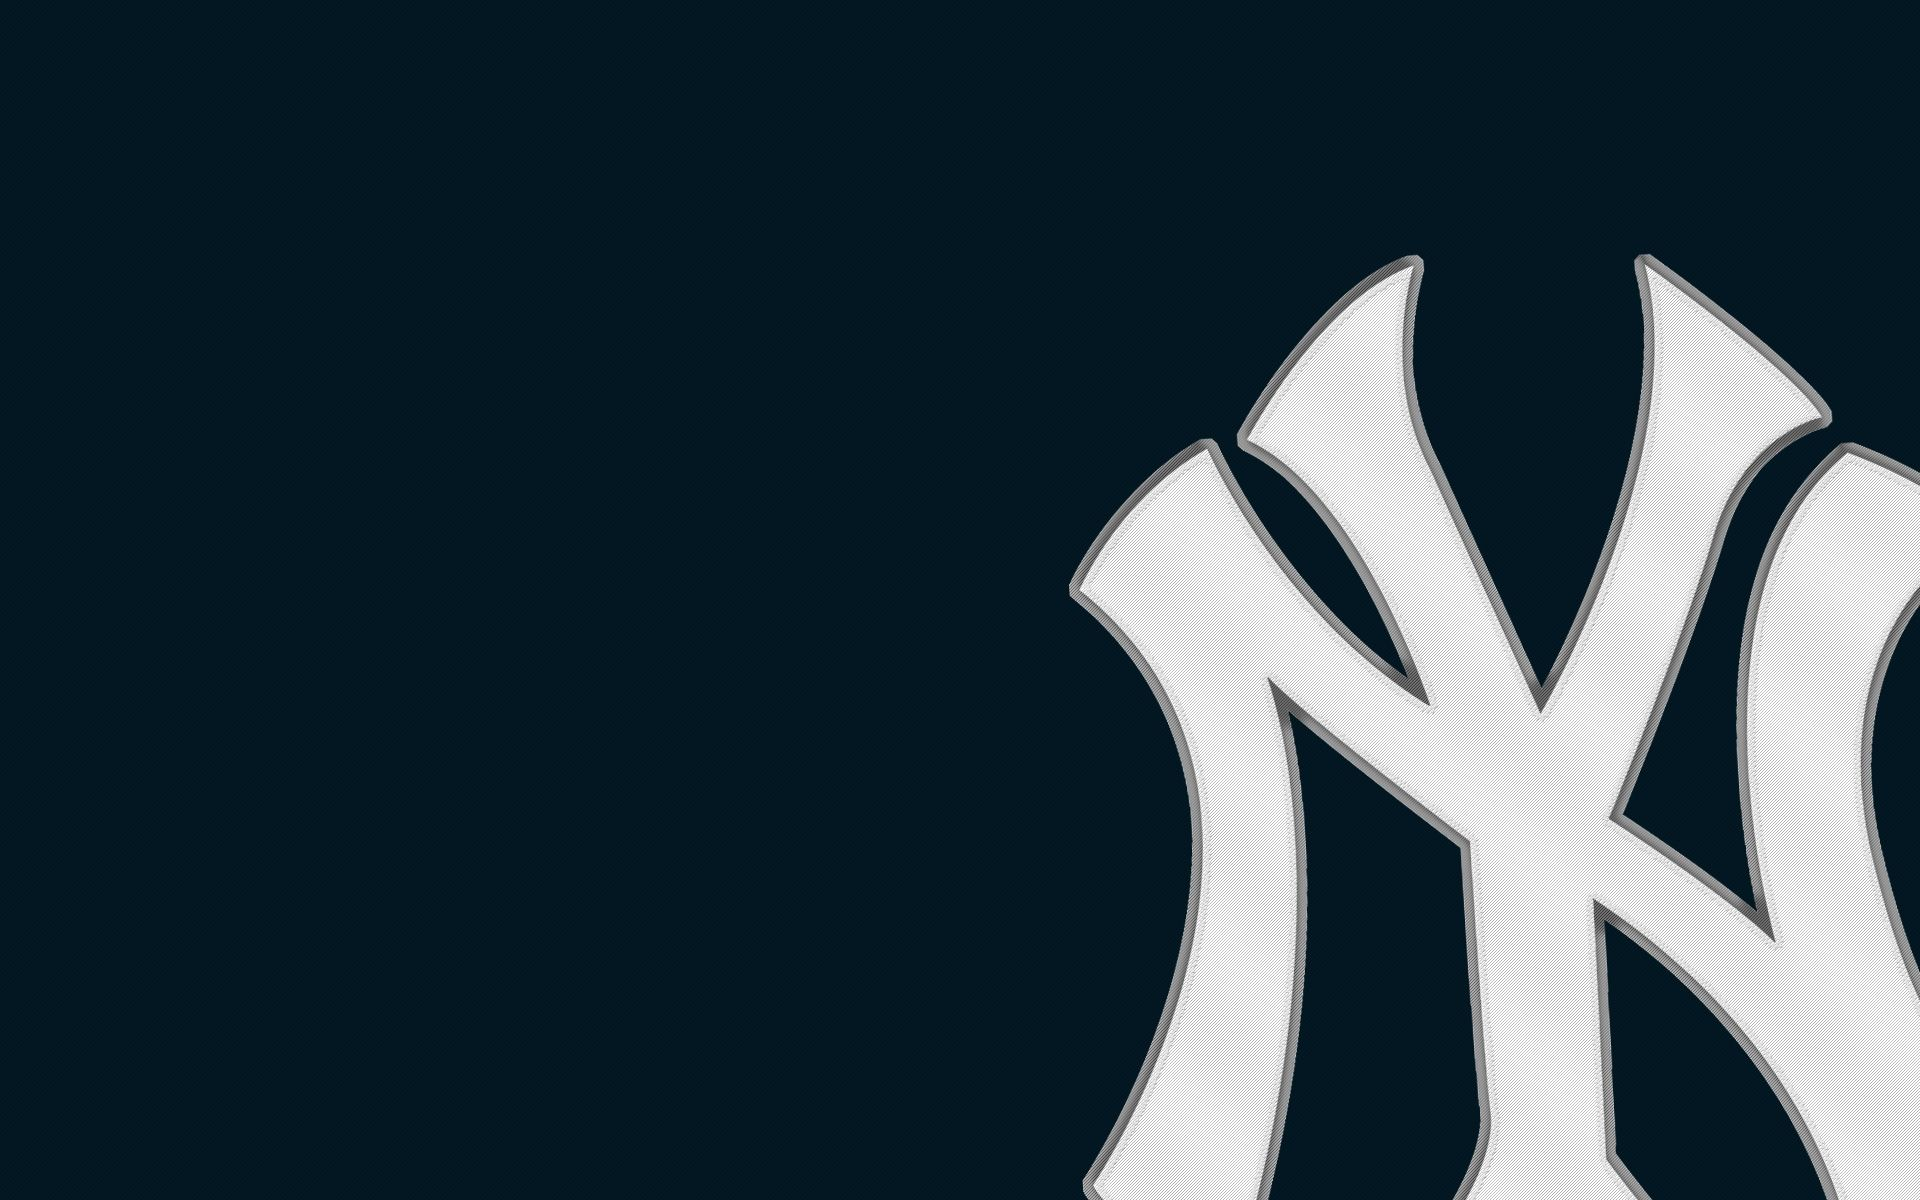 High Definition 1920x1200 Yankees Desktop Background Black New York Yankees Logo Yankees Logo New York Yankees